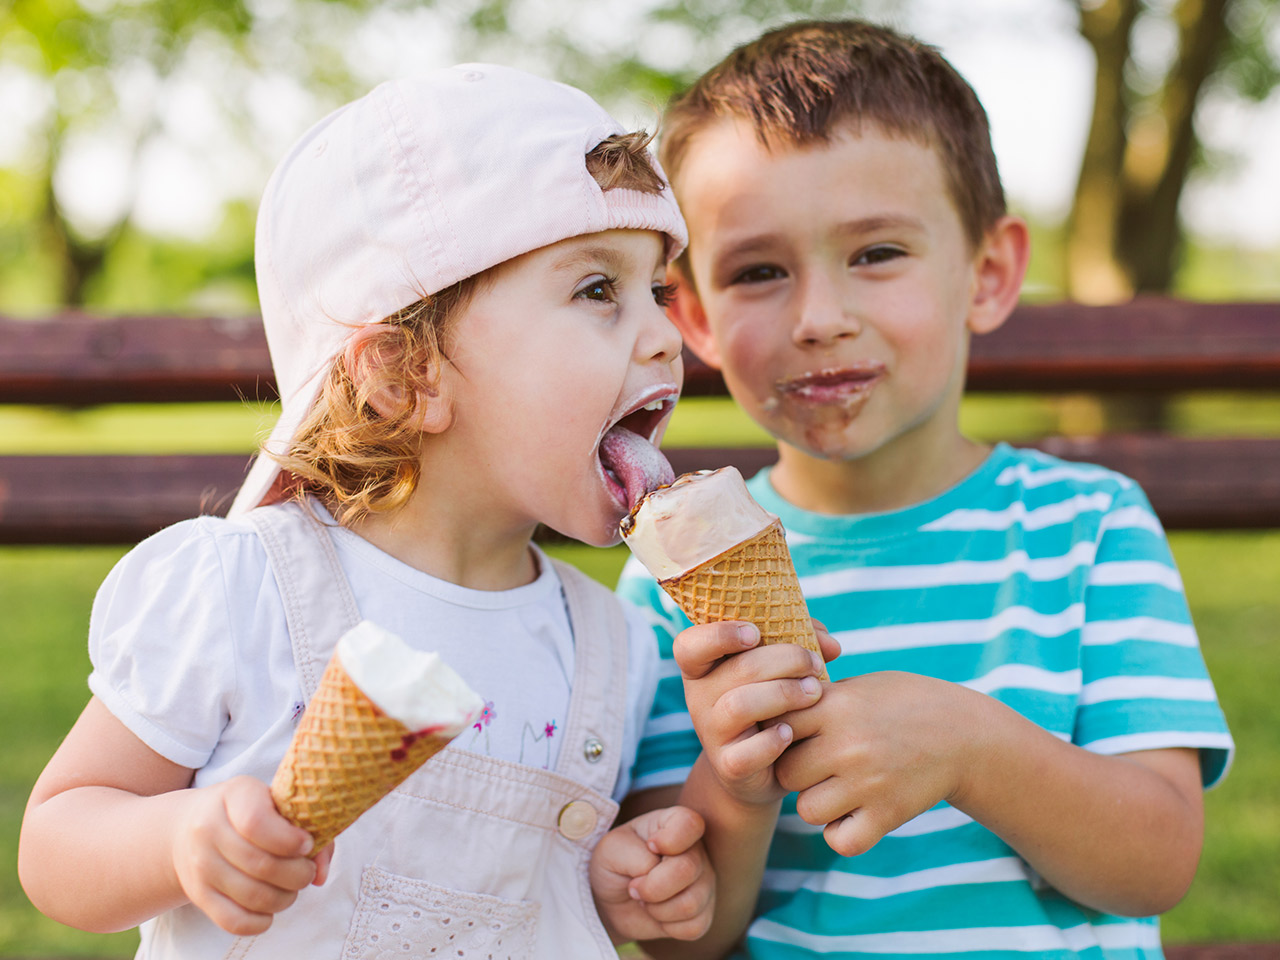 Cute little boy shares ice cream with his sister